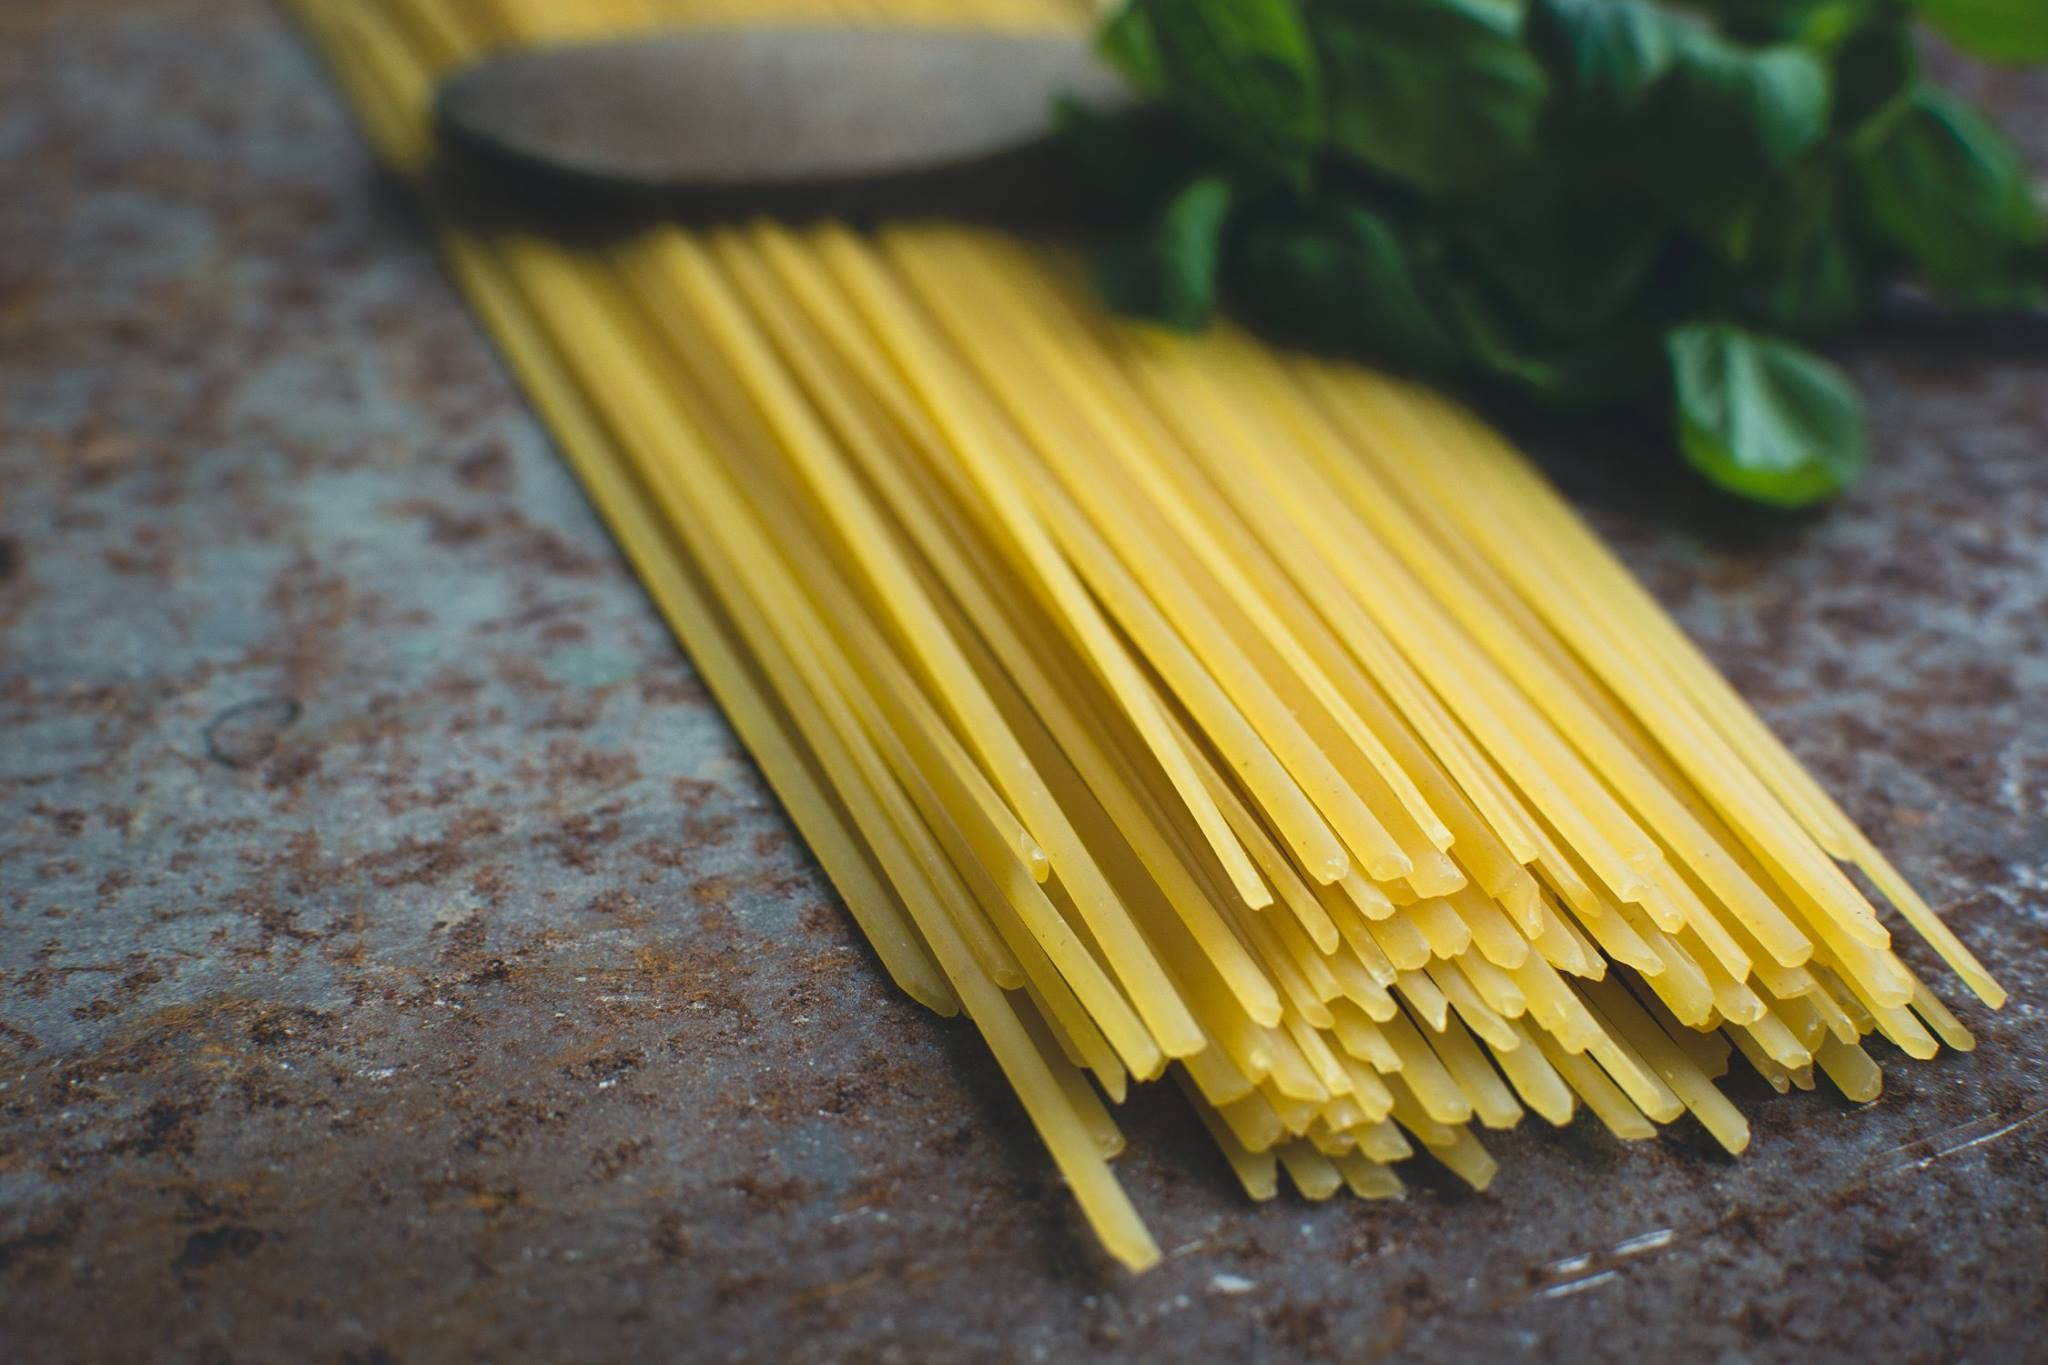 #simple #recipe for the most traditional italian dish #pasta #tuscanycook #conatctus #repin www.tuscanycook.com